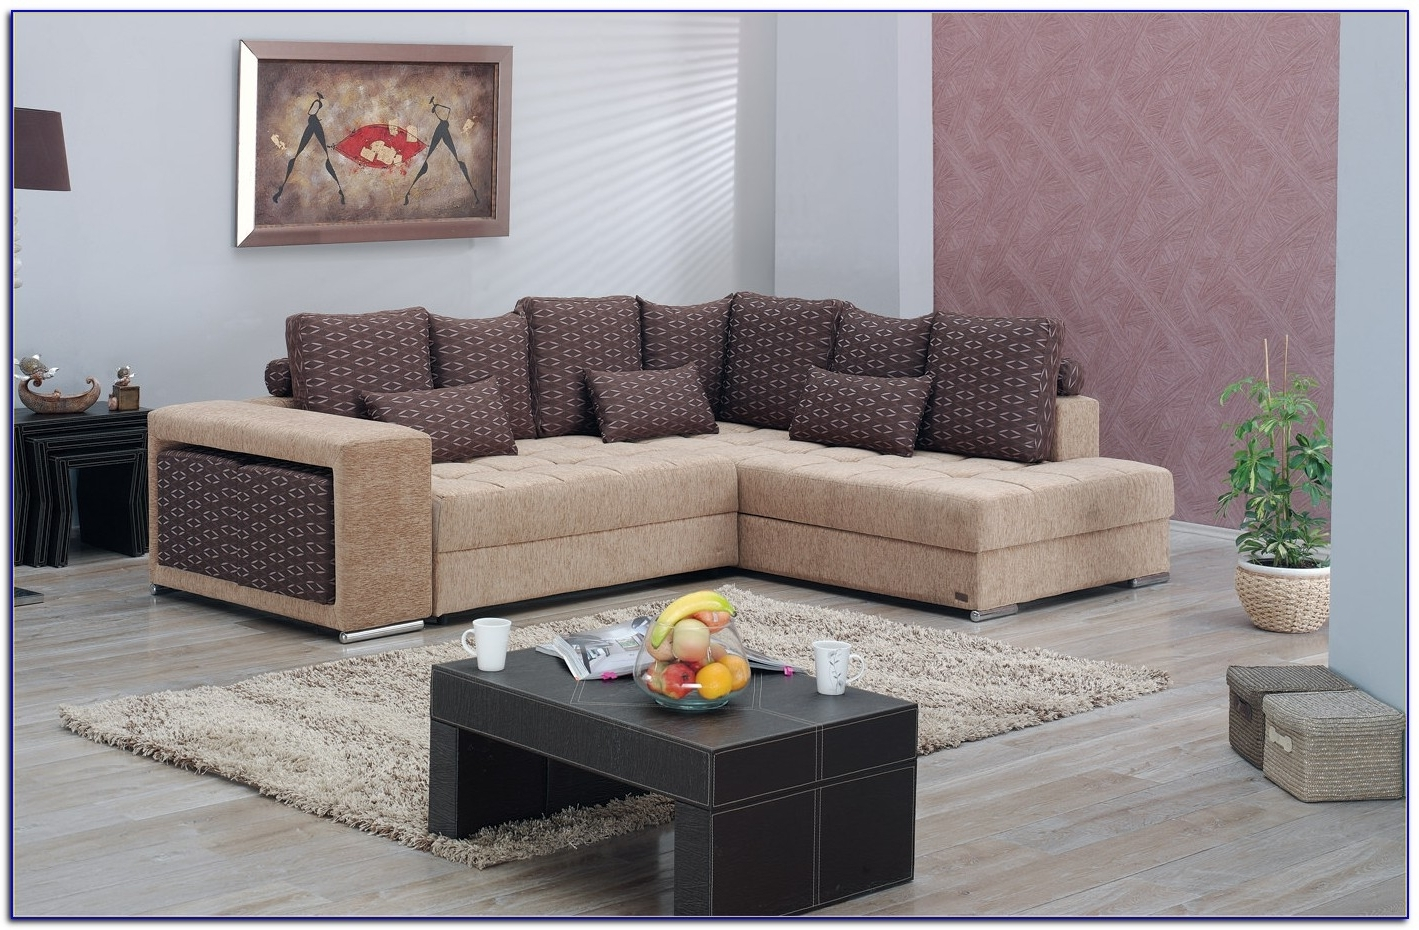 Fancy Kmart Sectional Sofa 82 For Sectional Sofas Ct With Kmart With Well Known Kmart Sectional Sofas (View 4 of 20)